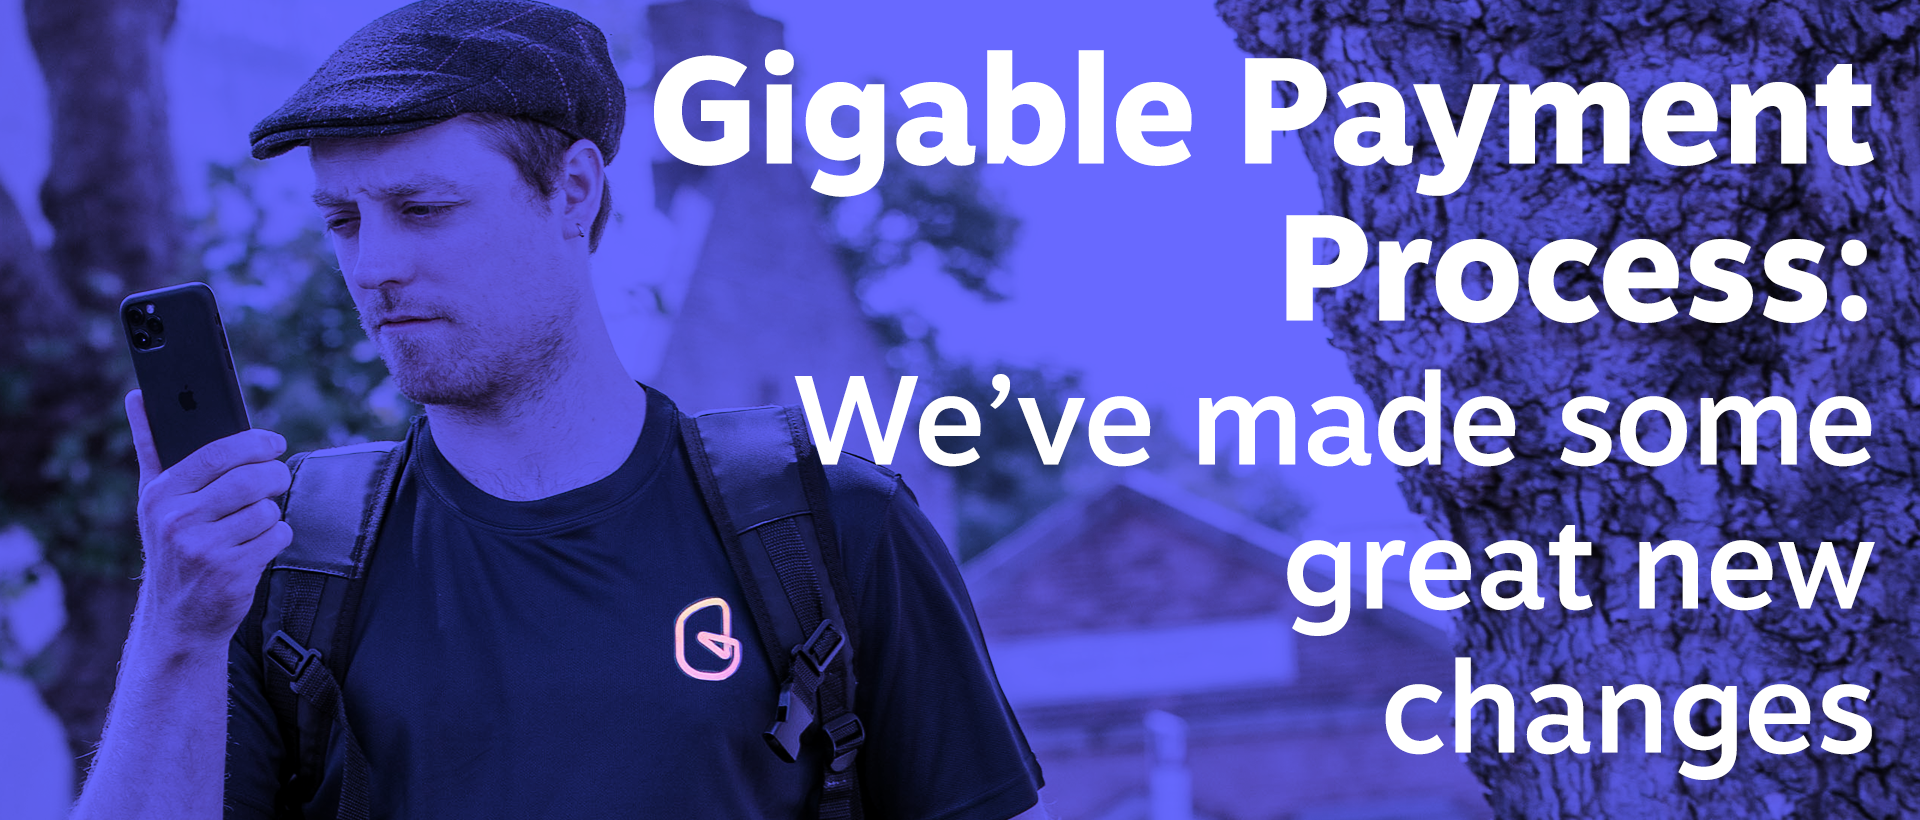 Gigable Payments